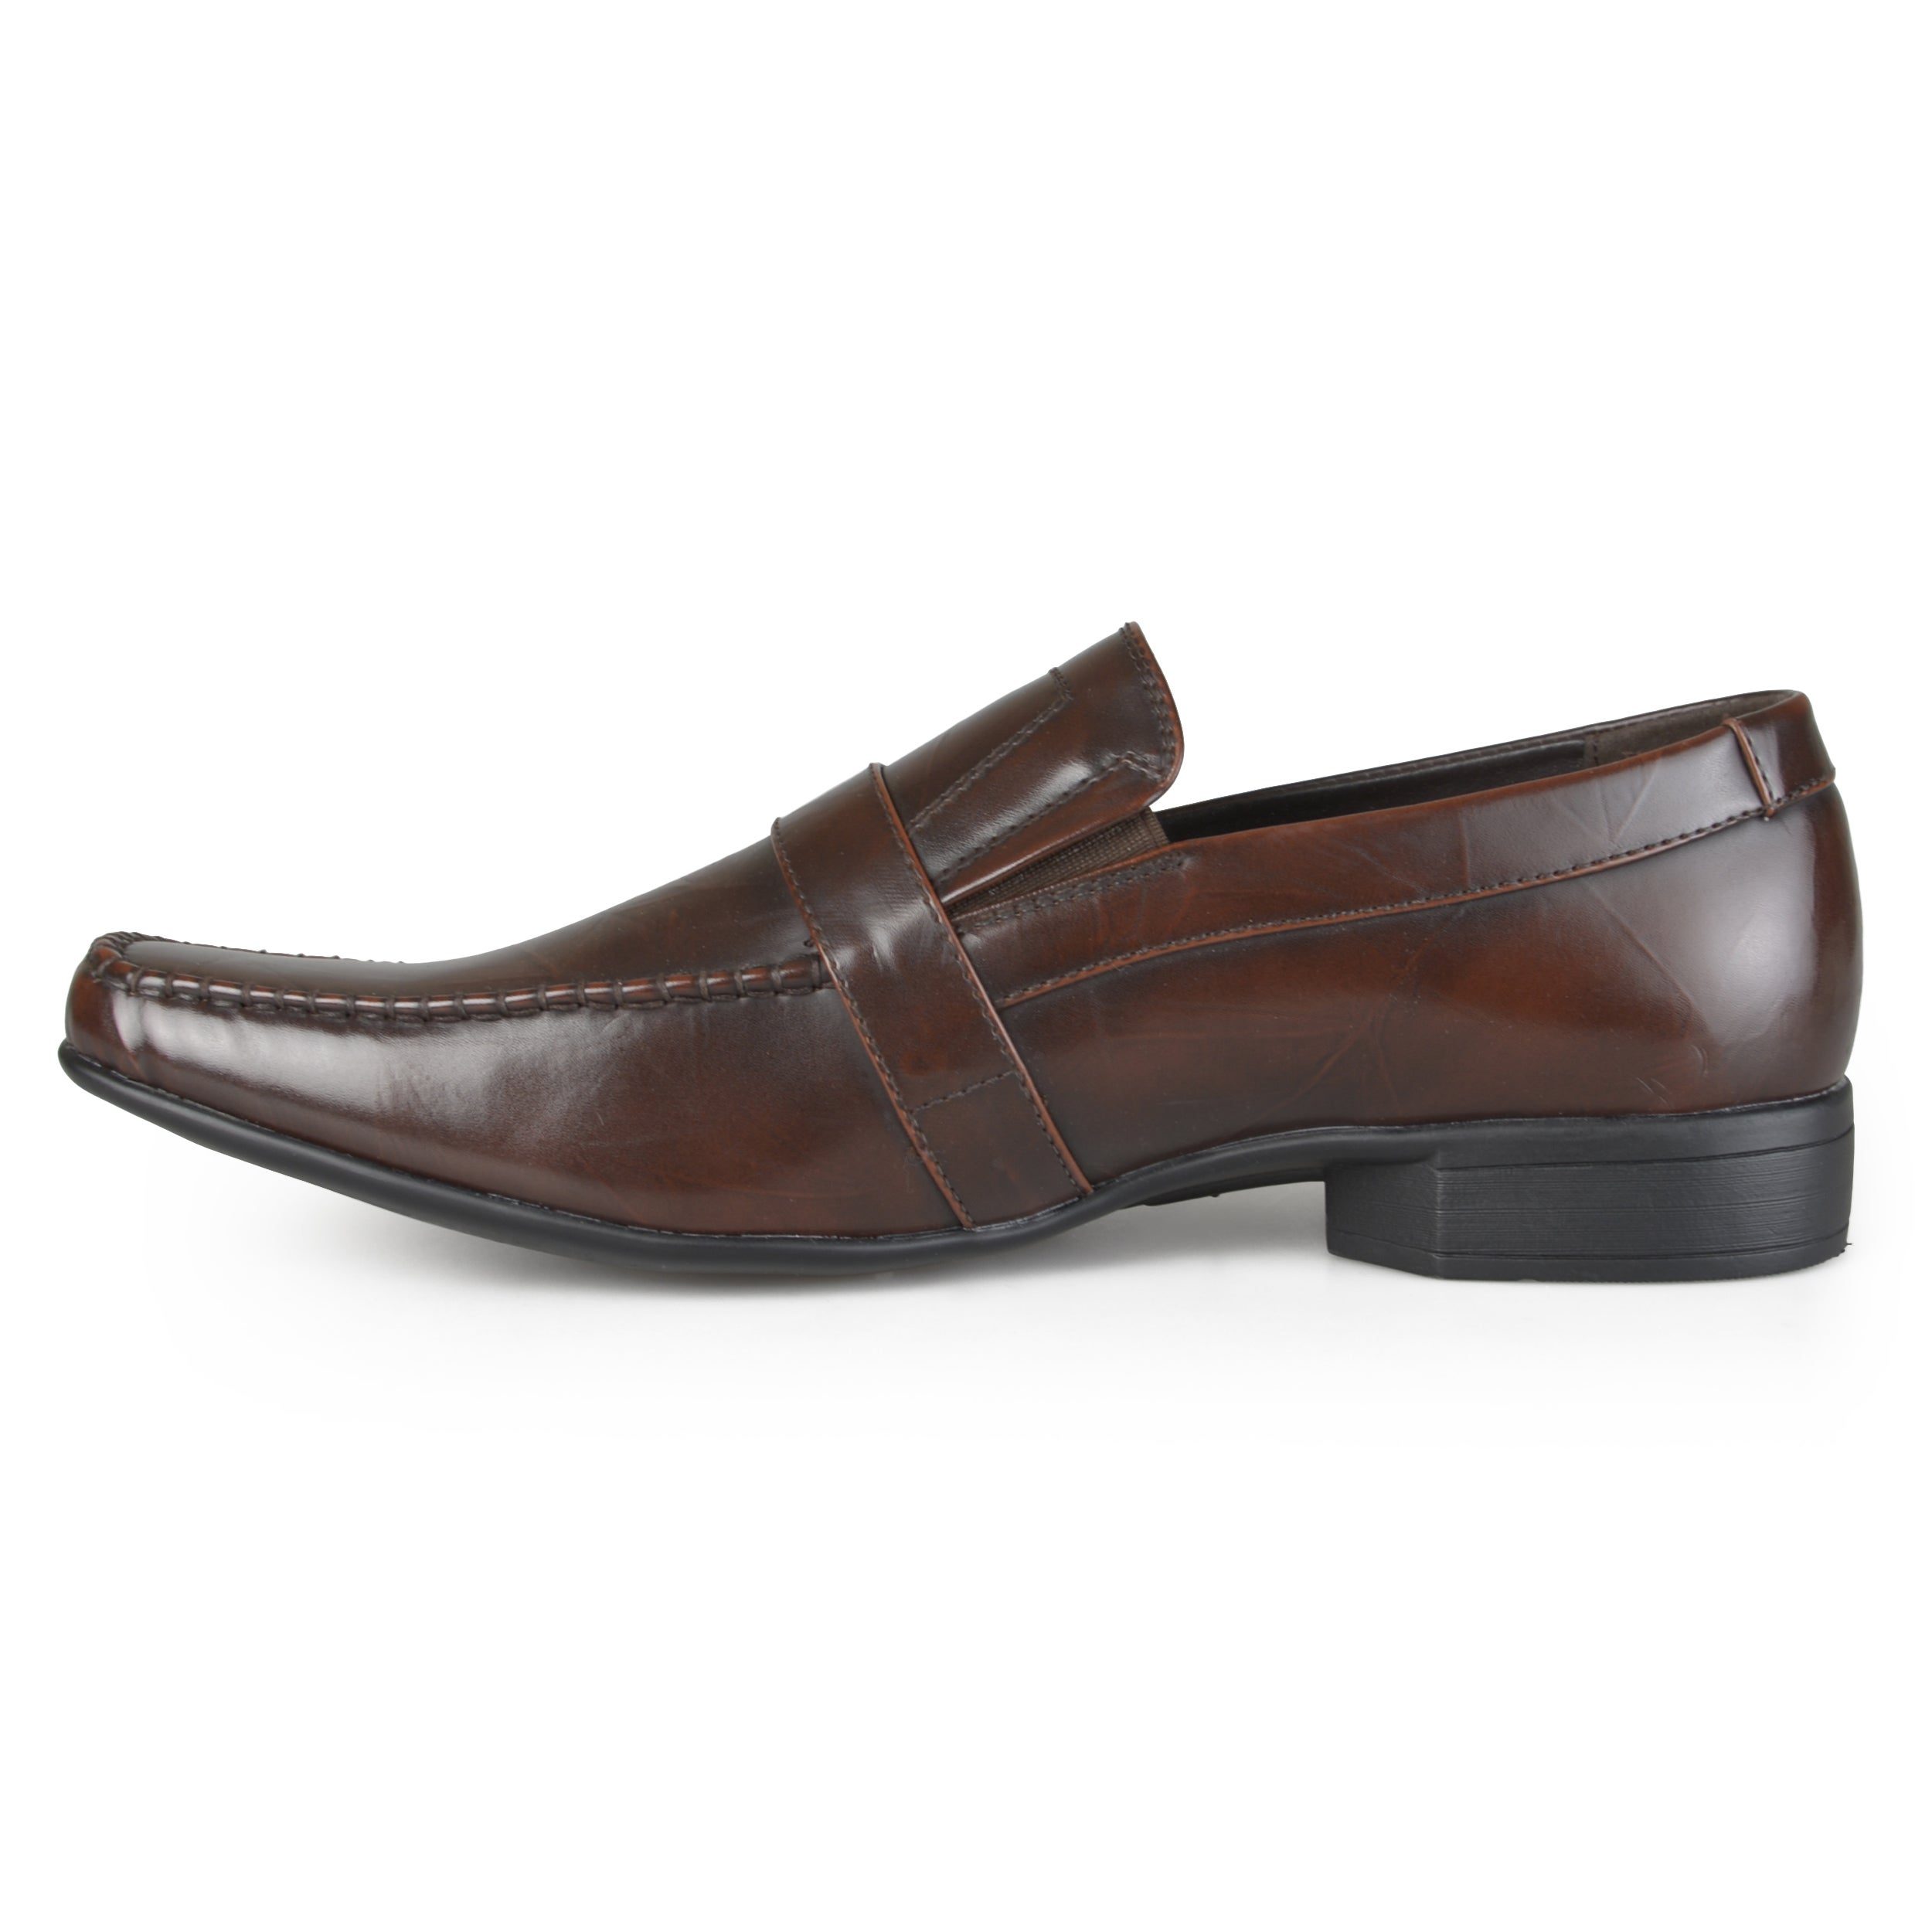 Vance Co. Men's Square Toe Faux Leather Slip-on Loafers - Free Shipping On  Orders Over $45 - Overstock.com - 18299919